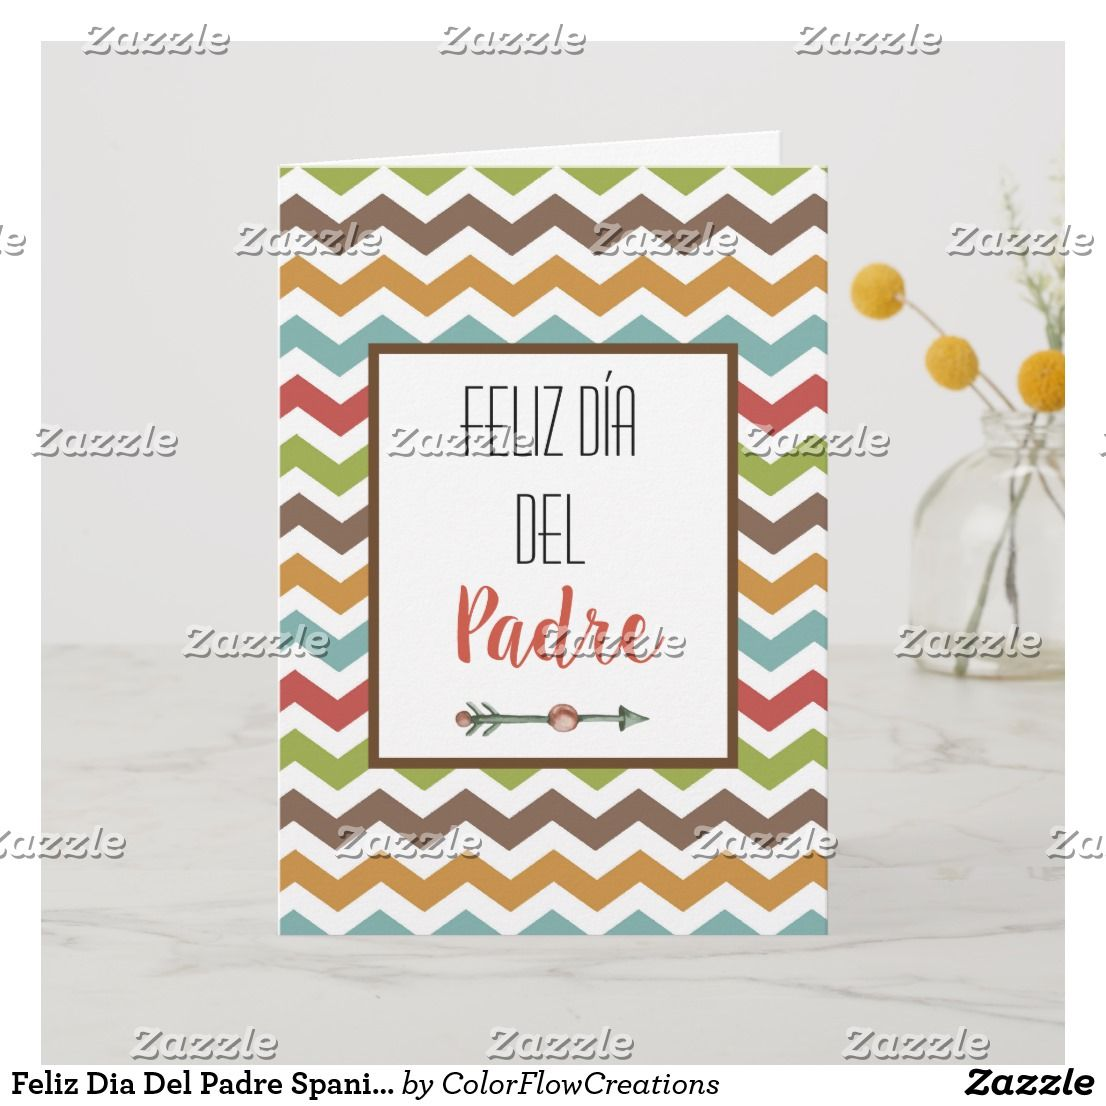 Feliz Dia Del Padre Spanish Fathers Day Card | Zazzle.com